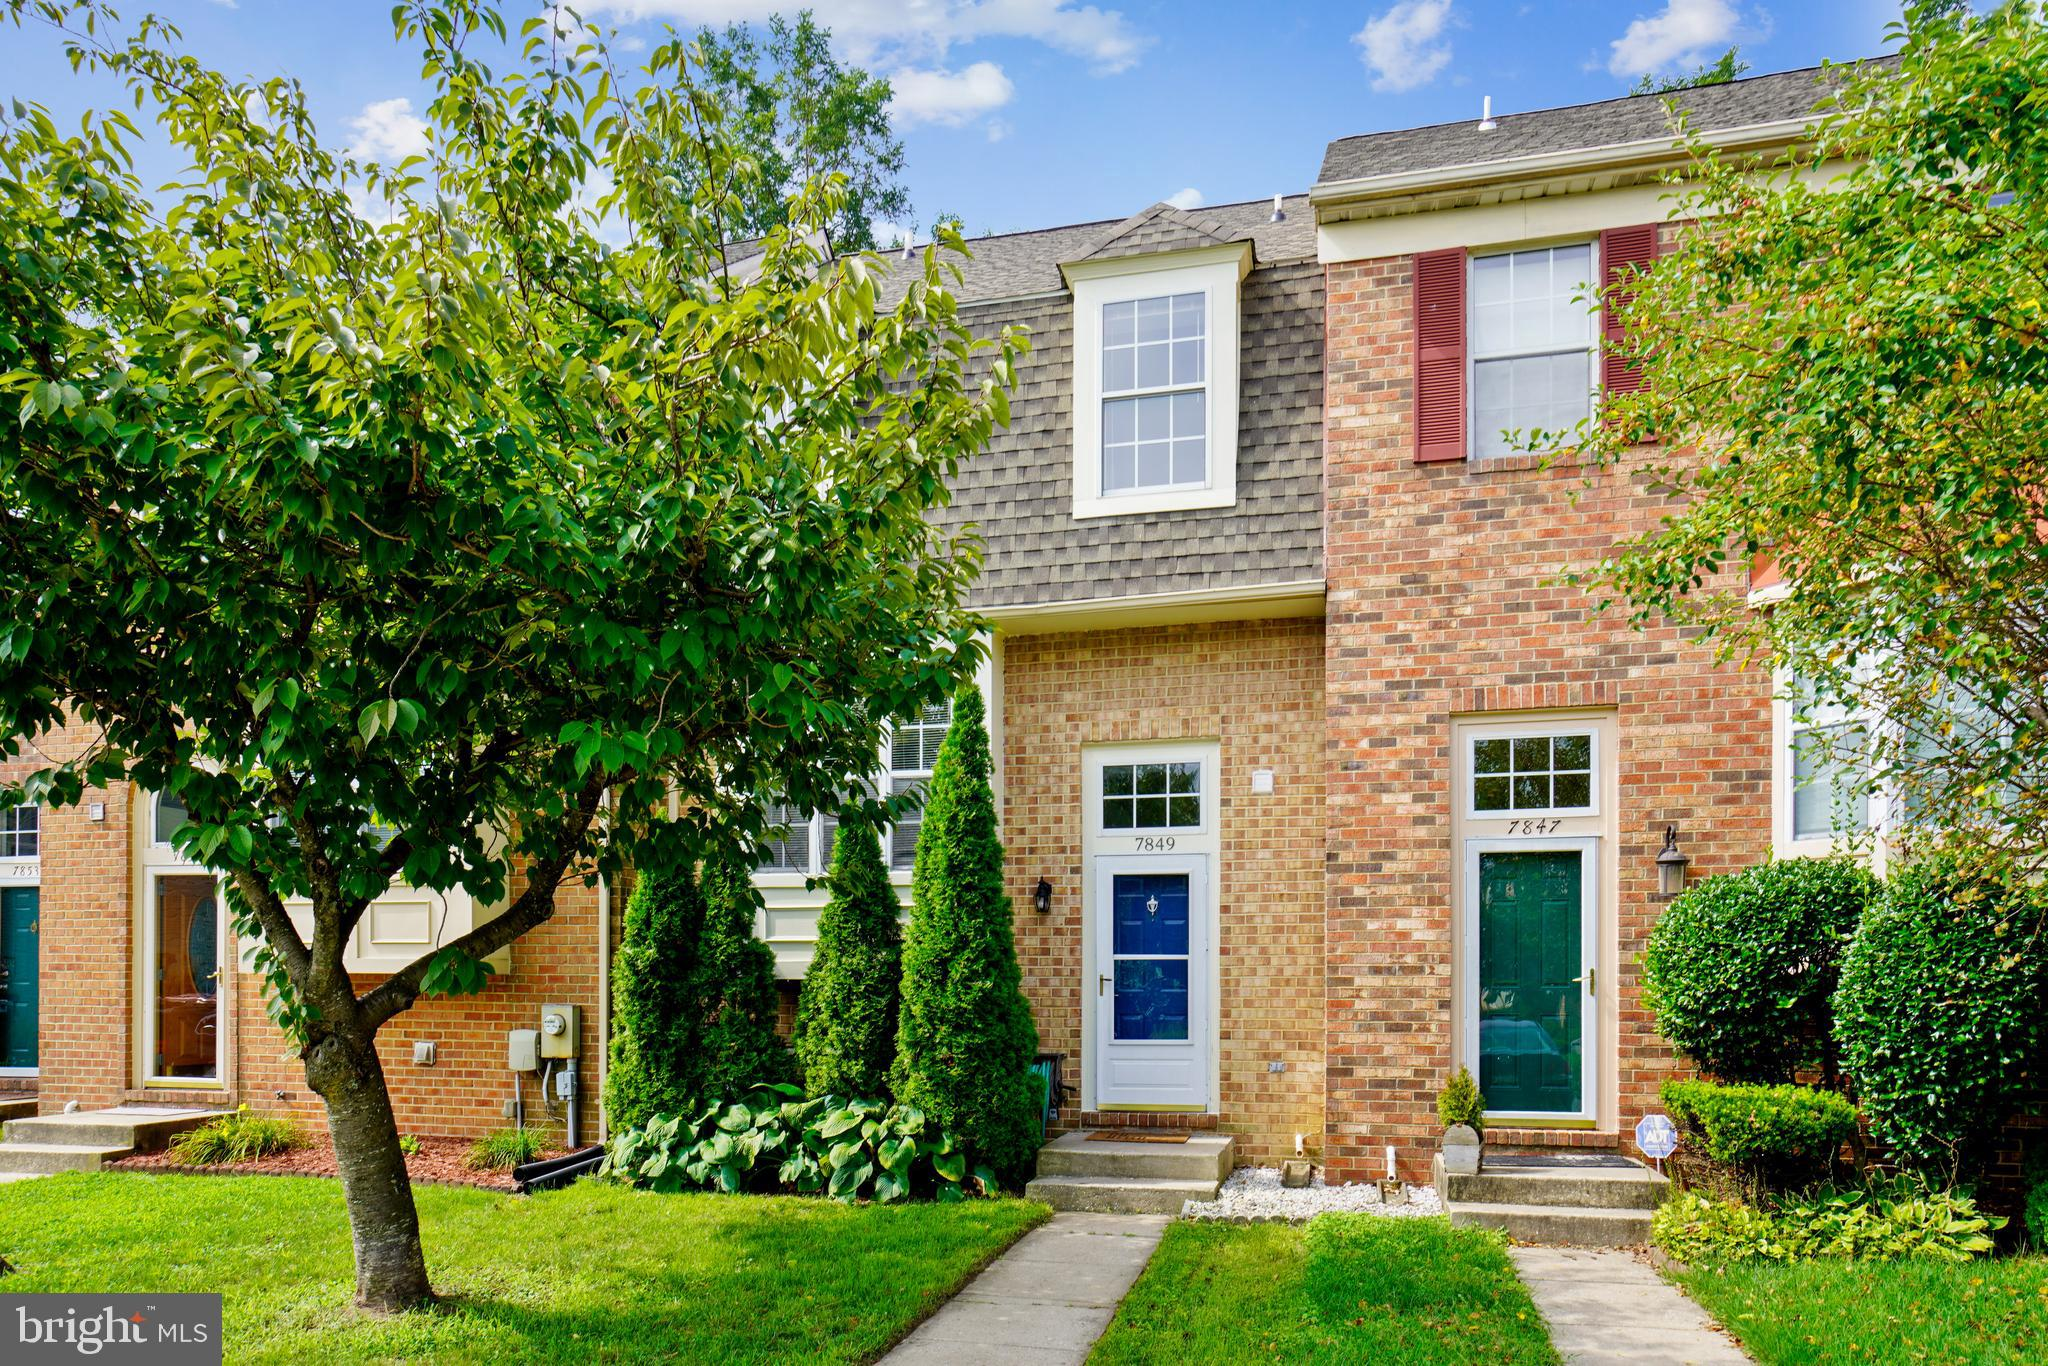 Beautifully updated Townhome in Stoney Beach. This fabulous property offers  three fully finished levels with over 1,400 finished square feet, new gourmet Kitchen with granite counters & stainless steel appliance, new roof, new deck, updated HVAC, freshly painted, carpets professionally cleaned, hardwood floor, fully finished lower level with new full bath and more. The main level's open concept continues throughout the main level and ascending to both upper and lower levels. The upper level leads to luxurious Owner's bedroom with private entrance to full bath, and nicely size closets. The additional features to the upper level include spacious second bedroom with vast amount of closet space. The amazing features of the lower level continue to offer endless possibilities with large Recreation room/3rd bedroom, full bath, storage area in Laundry/Utility room. The sliding glass door off the Living room on the main level invites one to a NEW large deck overlooking backyard oasis backing to trees for maximum privacy. The sliding glass door off the lower level invites on to a private covered walk up. With a  front porch surrounded by professional landscaping, fantastic exterior amenities overlooking the woods, easy access to premium Stoney Beach community amenities, you'll enjoy a perfect setting for private relaxing and entertaining both inside and out. Community amenities include: clubhouse,  outdoor pool, playgrounds, picnic areas, beach, boat ramp, walking paths, boat yard storage and more!! Minutes to Baltimore City,  Fort Meade, NSA, public transportation. With easy access to: 695, 97, 100, 32, 50, 295, 95 making it an ideal home for commuters. Don't hesitate. Call today for your private tour!!!